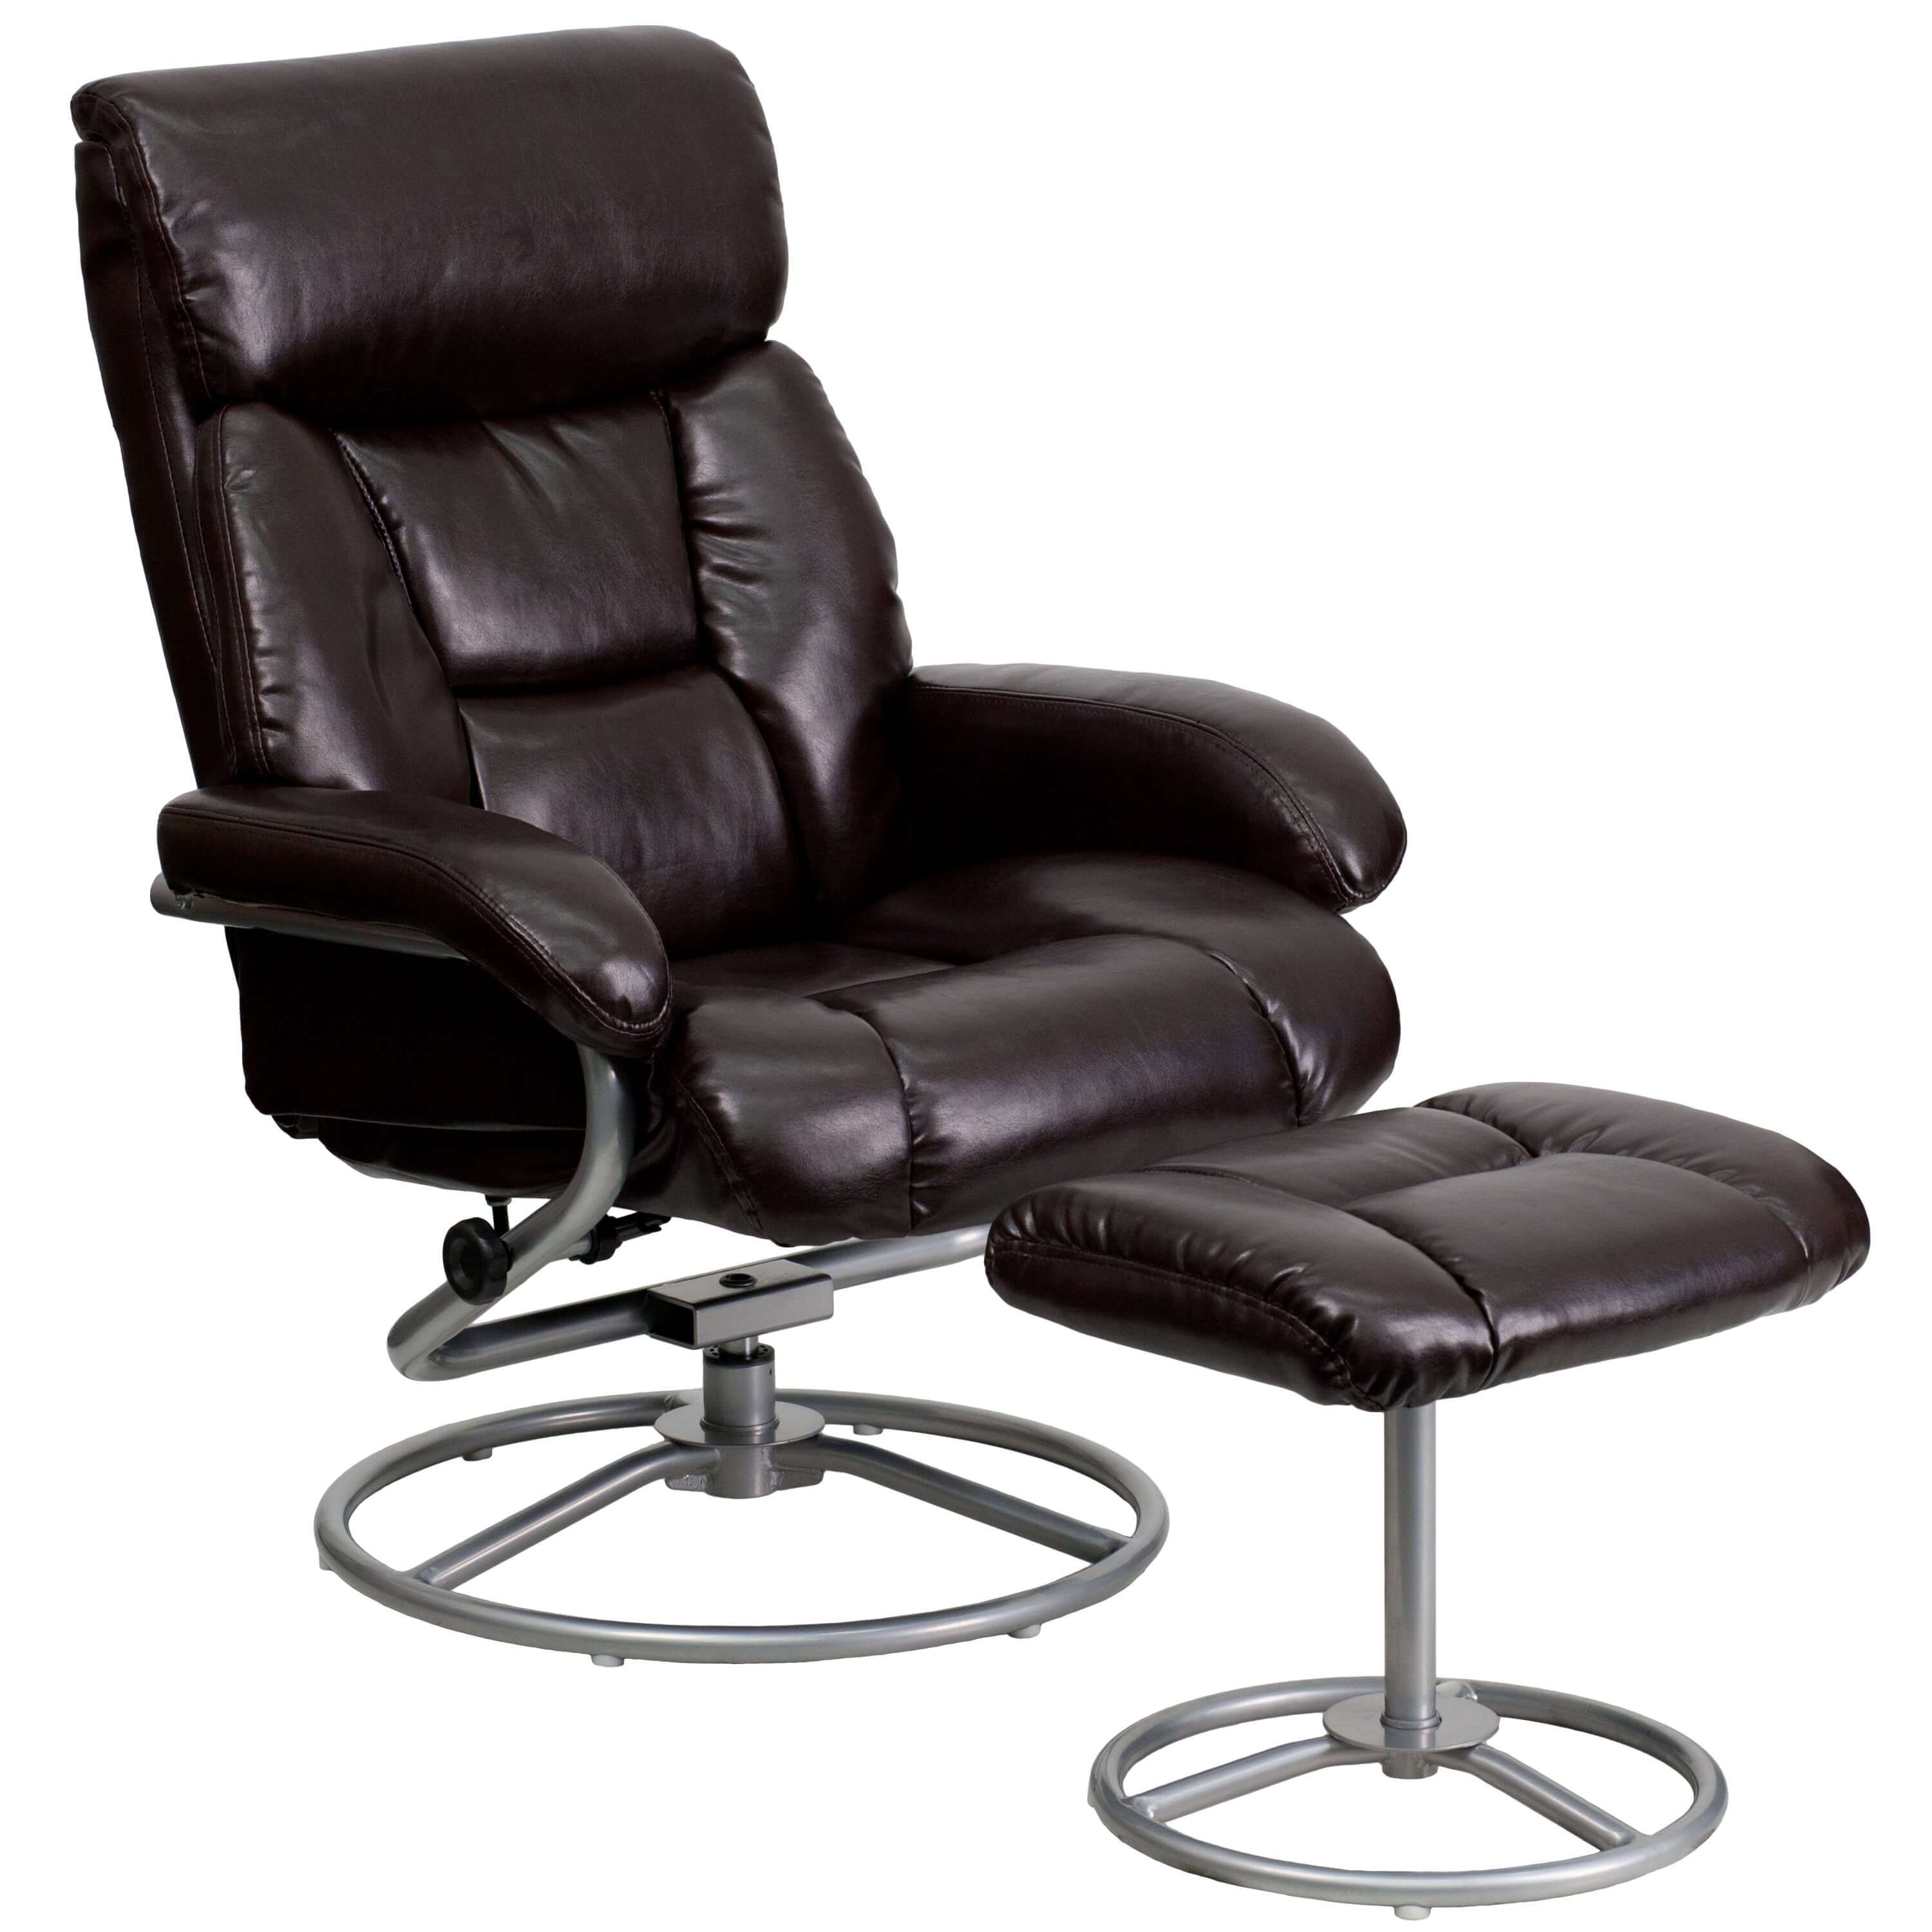 contemporary-recliners-contemporary-leather-recliners.jpg